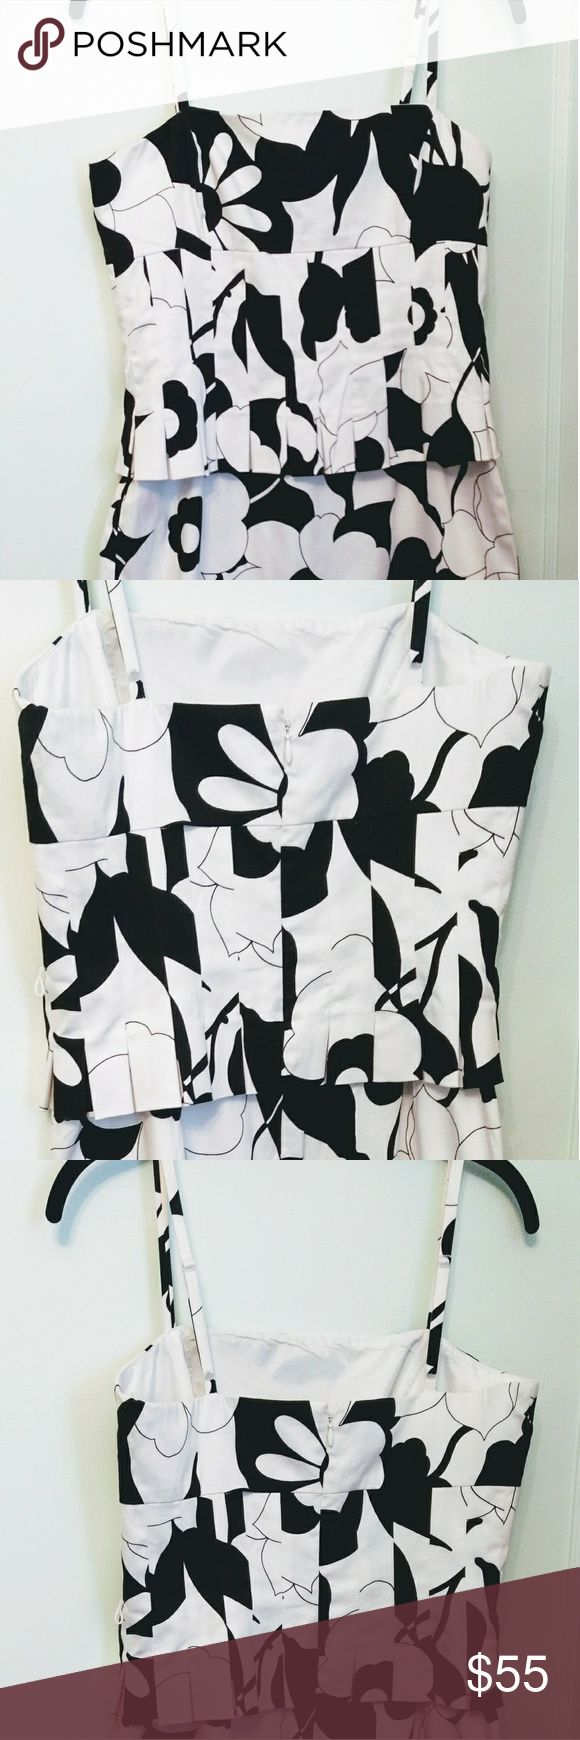 """Nine West Black & White Spaghetti Strap Dress EUC This flirty tropical print black & white sundress would be perfect for a summer wedding. It has adjustable spaghetti straps and a lined bodice. The waist is accented with a pleated peplum. The pencil skirt has a 3"""" slit in back. The closure is with a back hidden zipper. The waist also has a thin black belt that slips through intact loops at each side. Fabric: 97%cotton, 3% spandex. Dry Clean only. Measurements: strap to strap 10""""; armpit to…"""